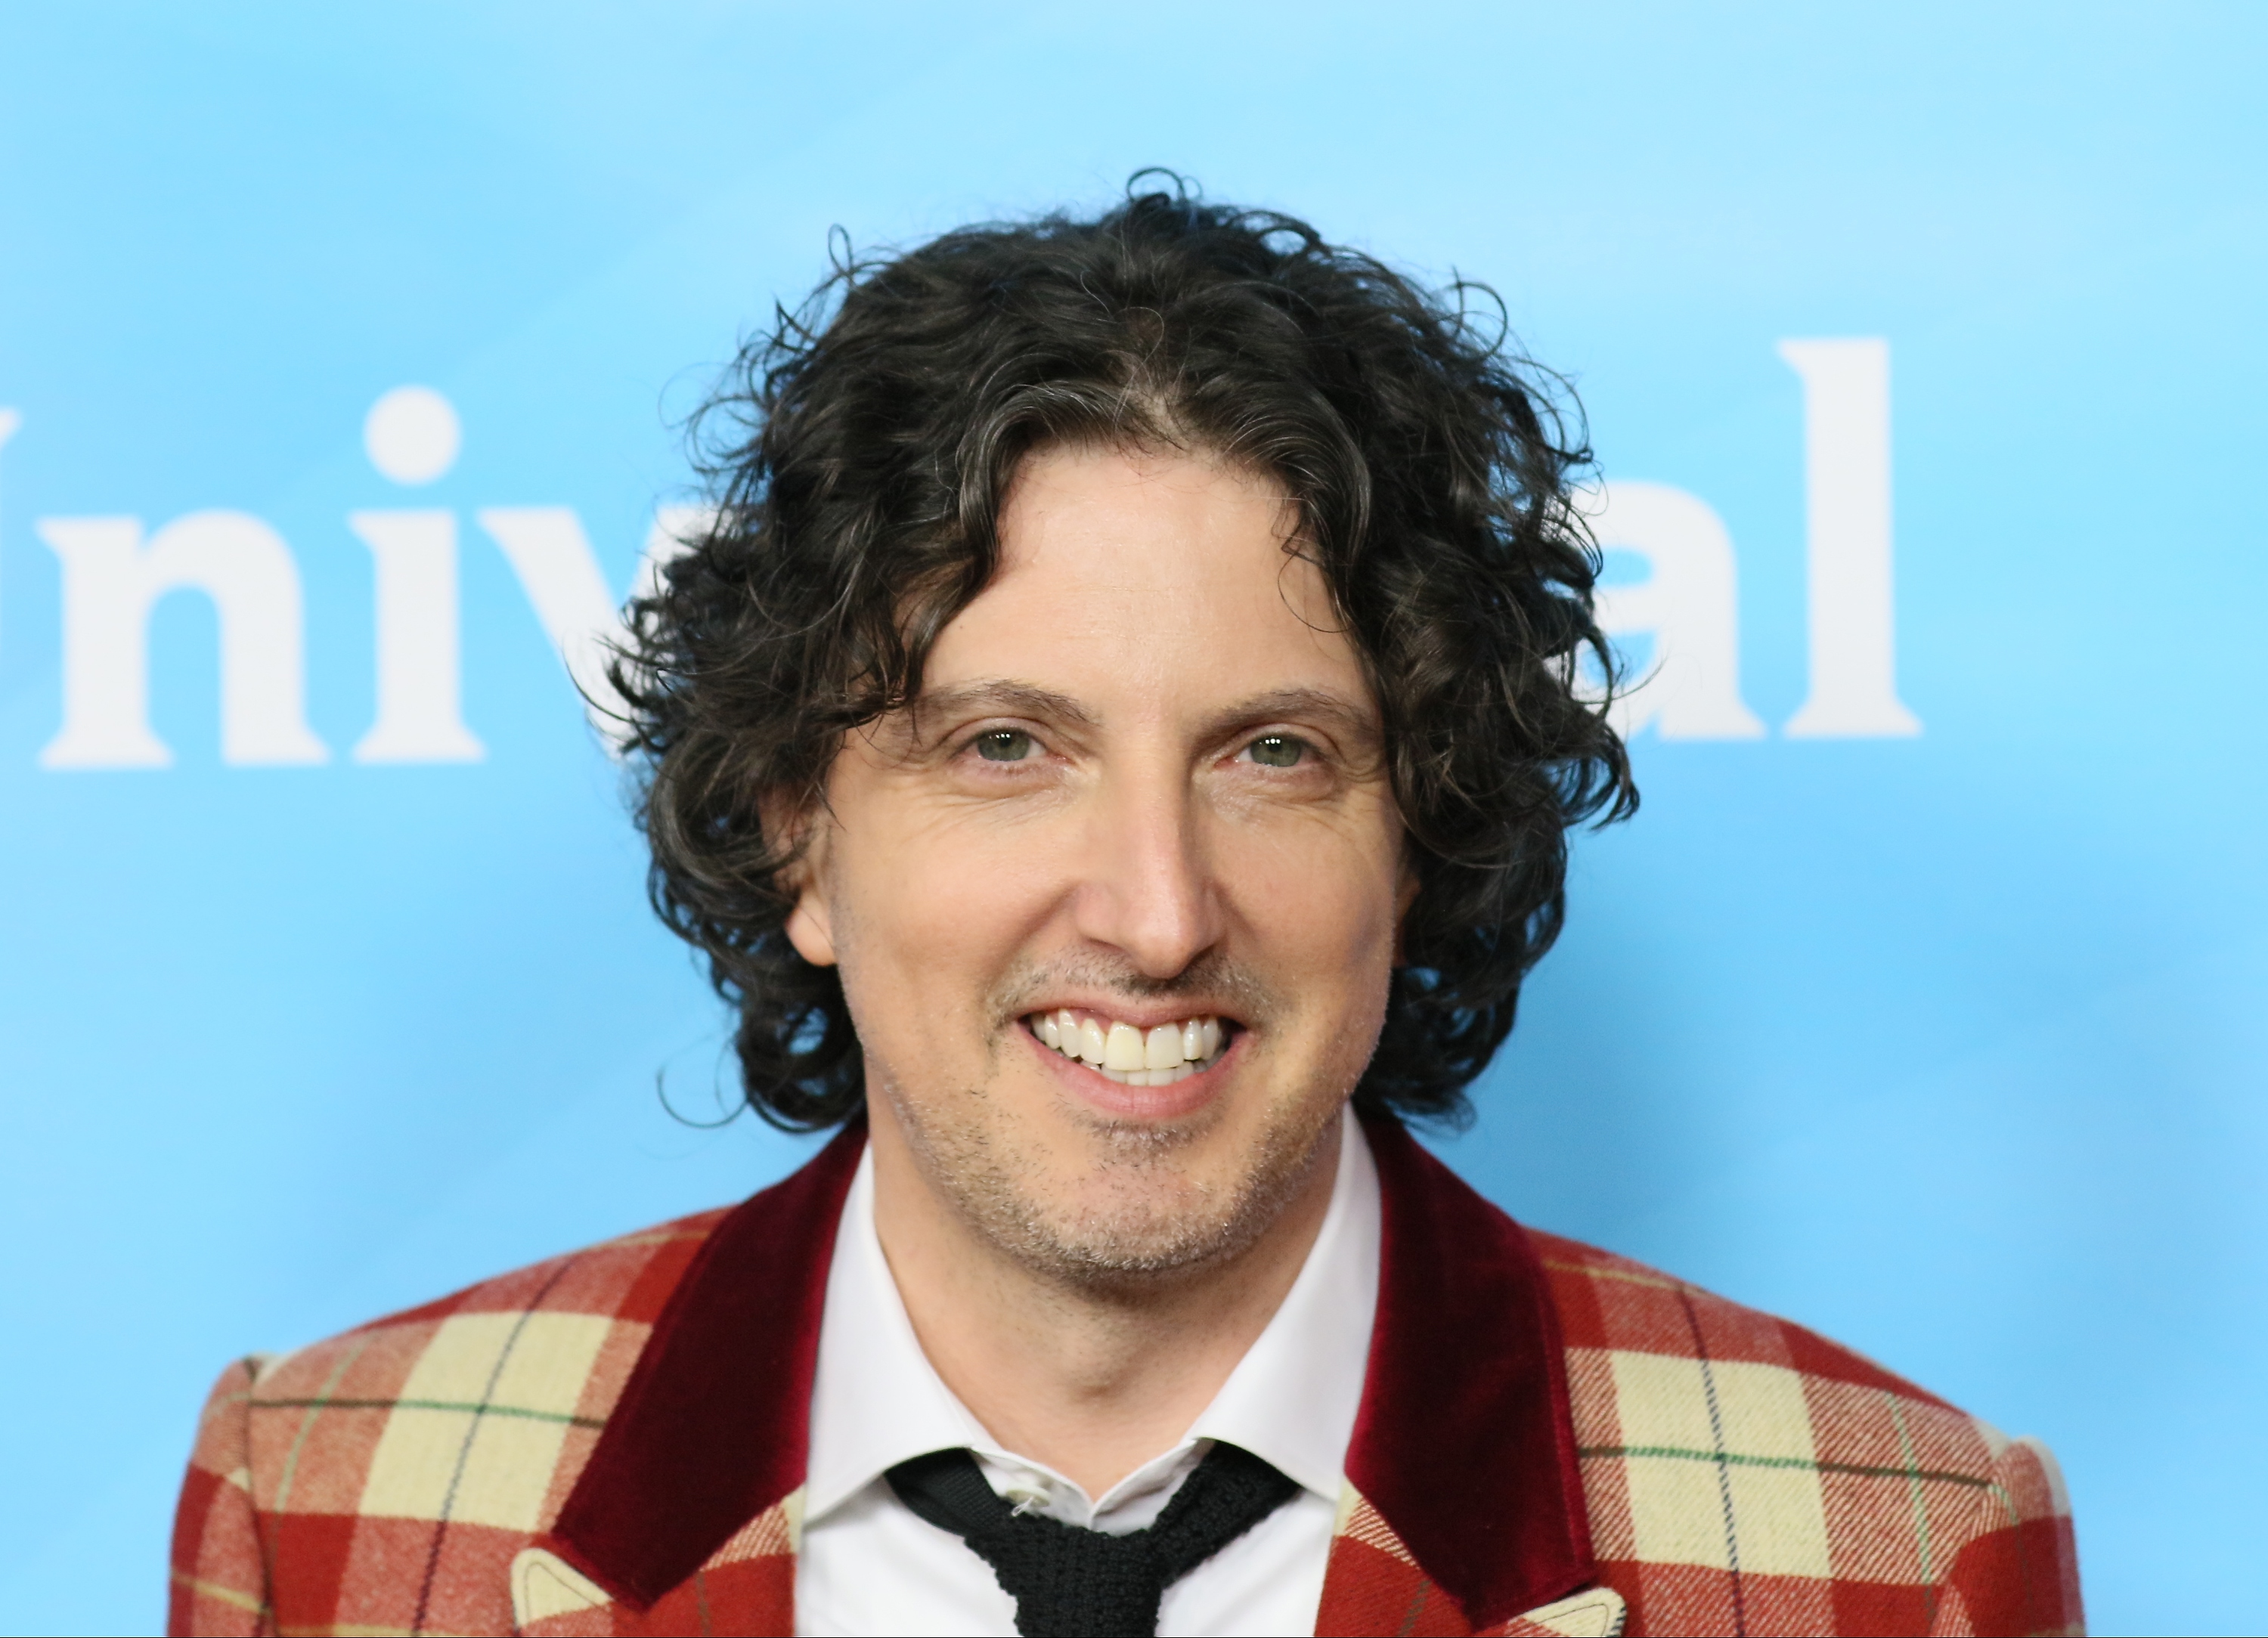 Mark Schwahn attends the NBCUniversal 2015 Press Tour at the Langham Huntington Hotel on Jan. 15, 2015 in Pasadena, Calif.